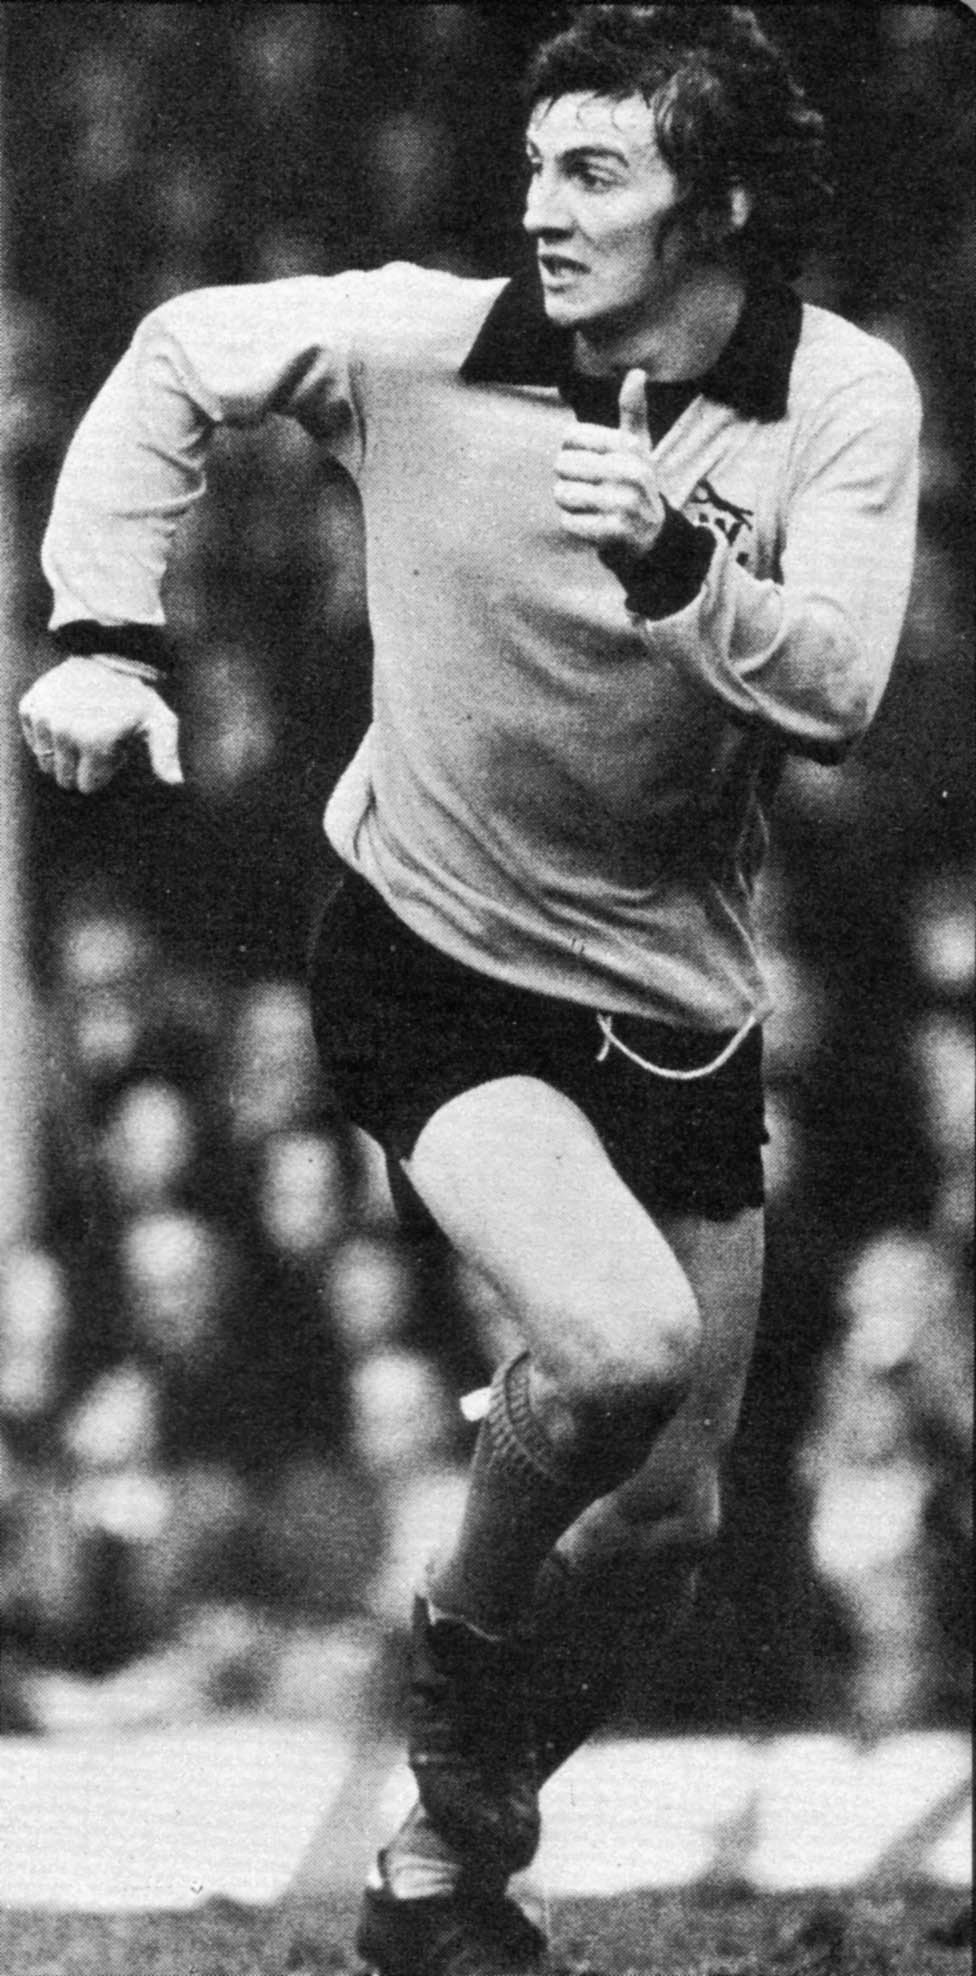 A dashing Barry Powell in 1973.